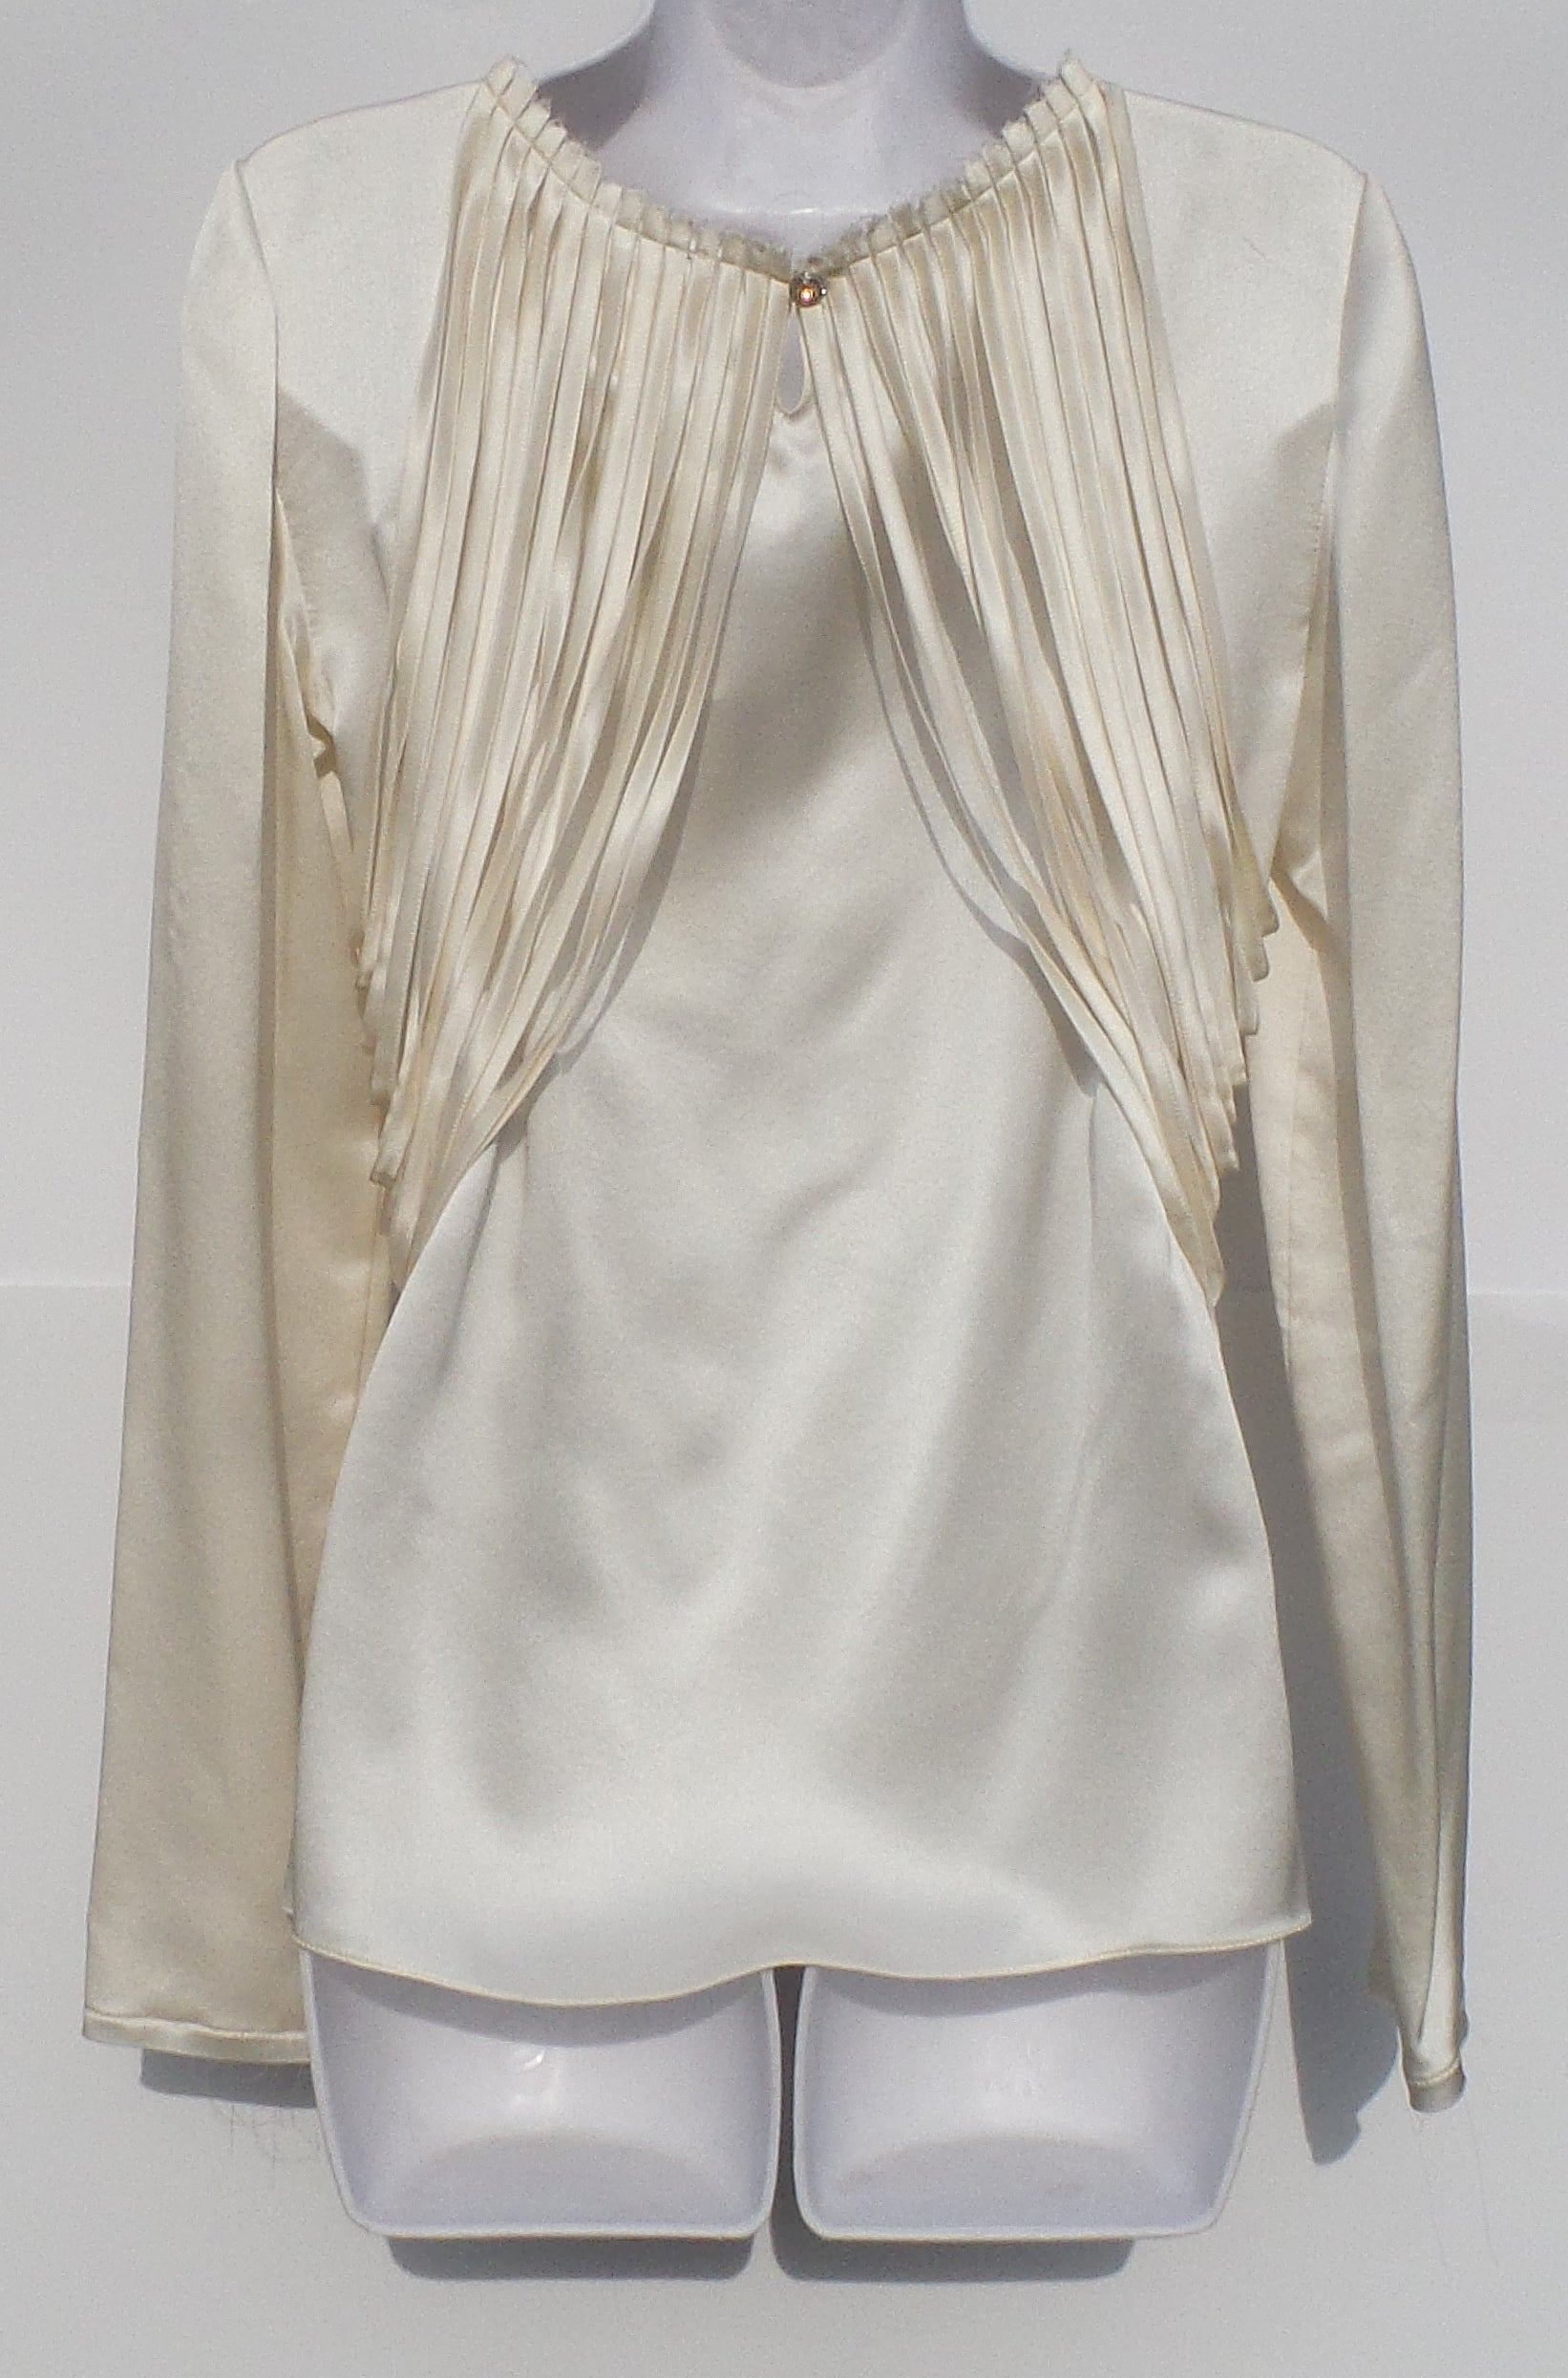 'Sold' CHANEL 12C Ivory White Draped Ribbon Silk Long Sleeve Crystal Button Blouse 38